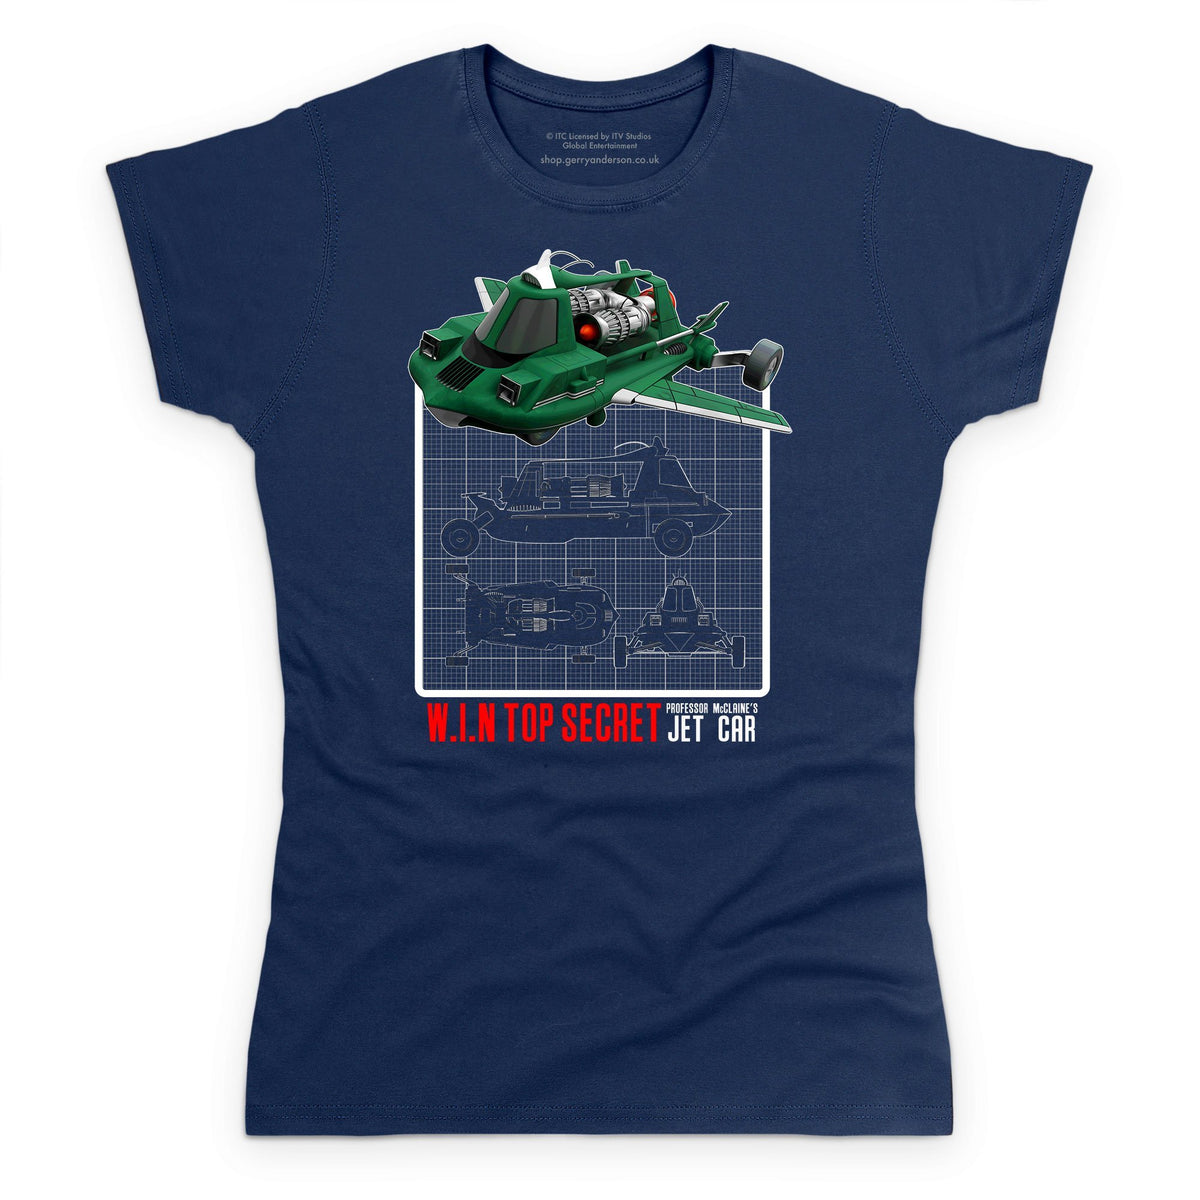 Joe 90 Mac's Jet Air Car Schematic Women's T-Shirt [Official & Exclusive] - The Gerry Anderson Store